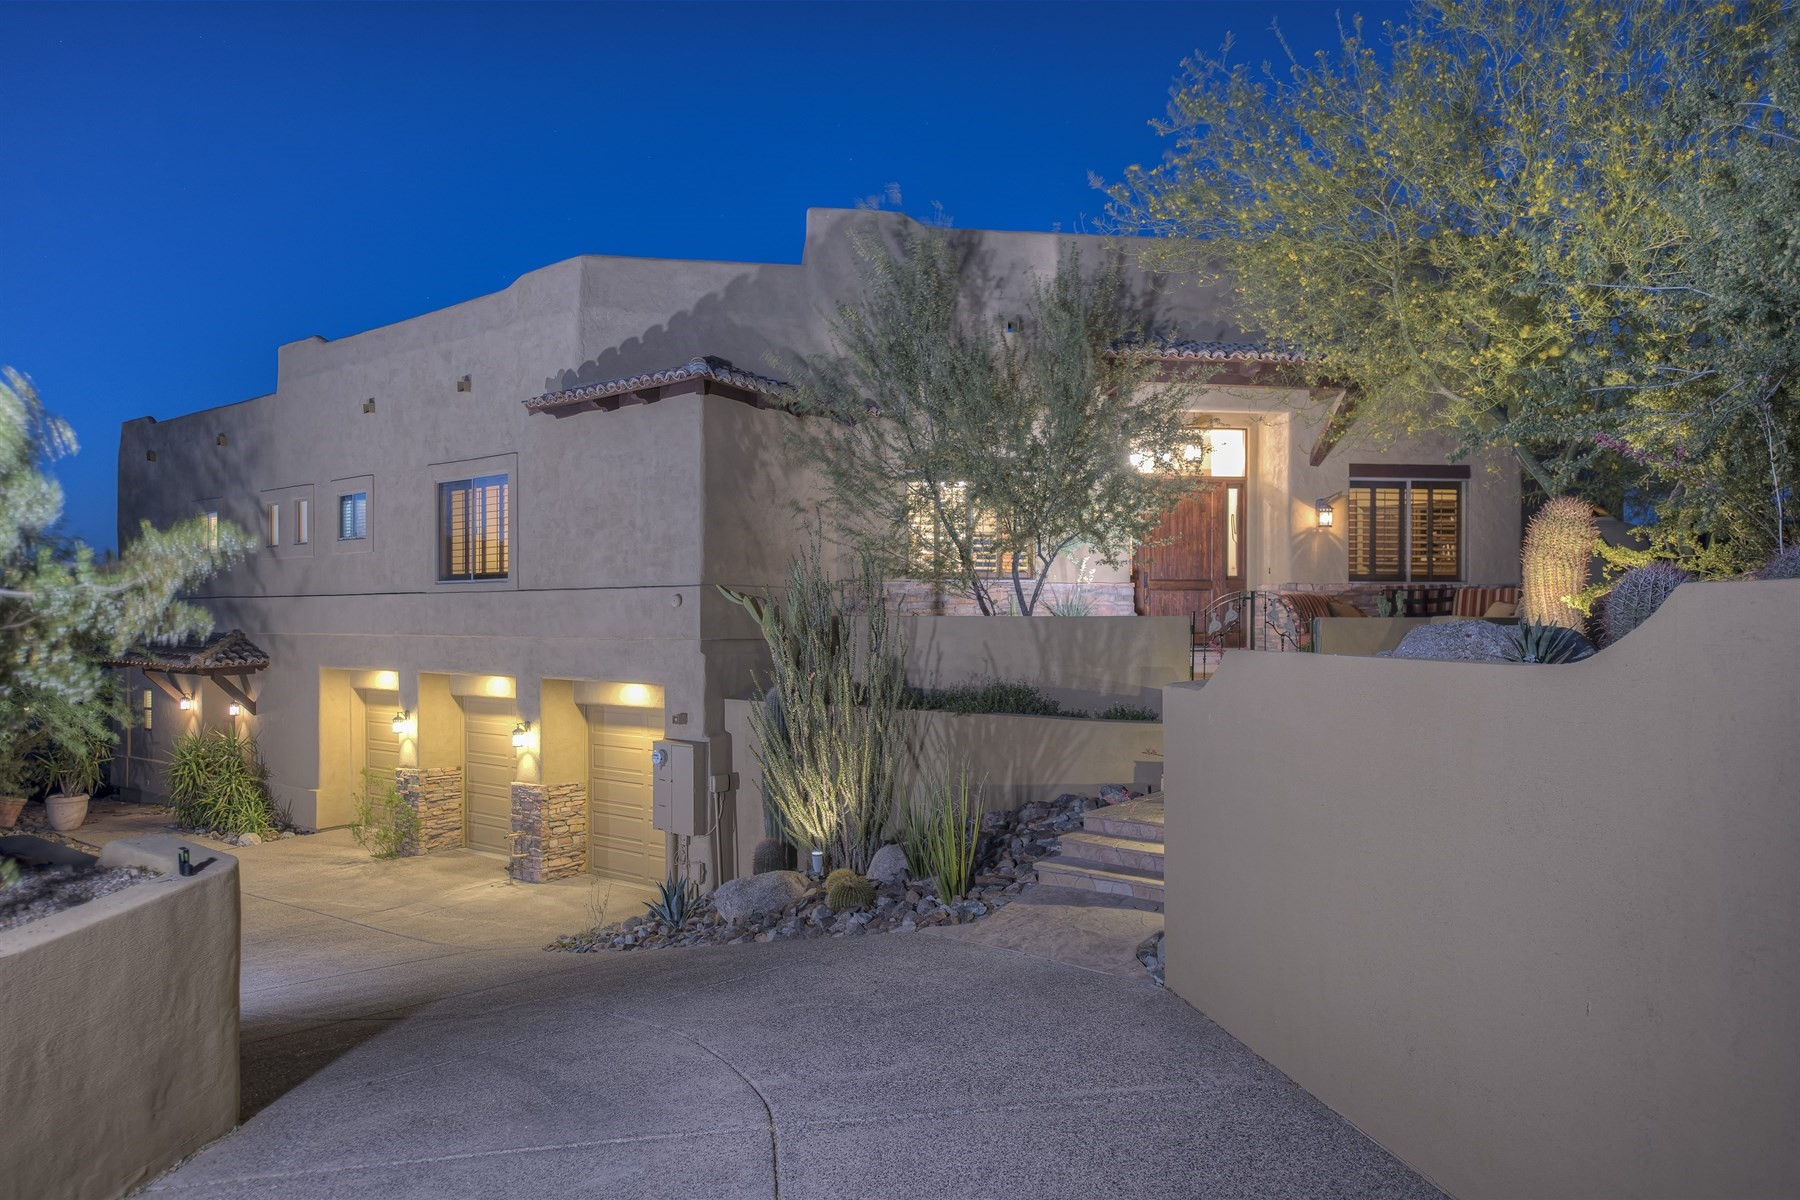 Single Family Home for Sale at Fabulous custom home in the coveted Overlook Estates with spectacular views 13825 N 16th Way Phoenix, Arizona, 85022 United States